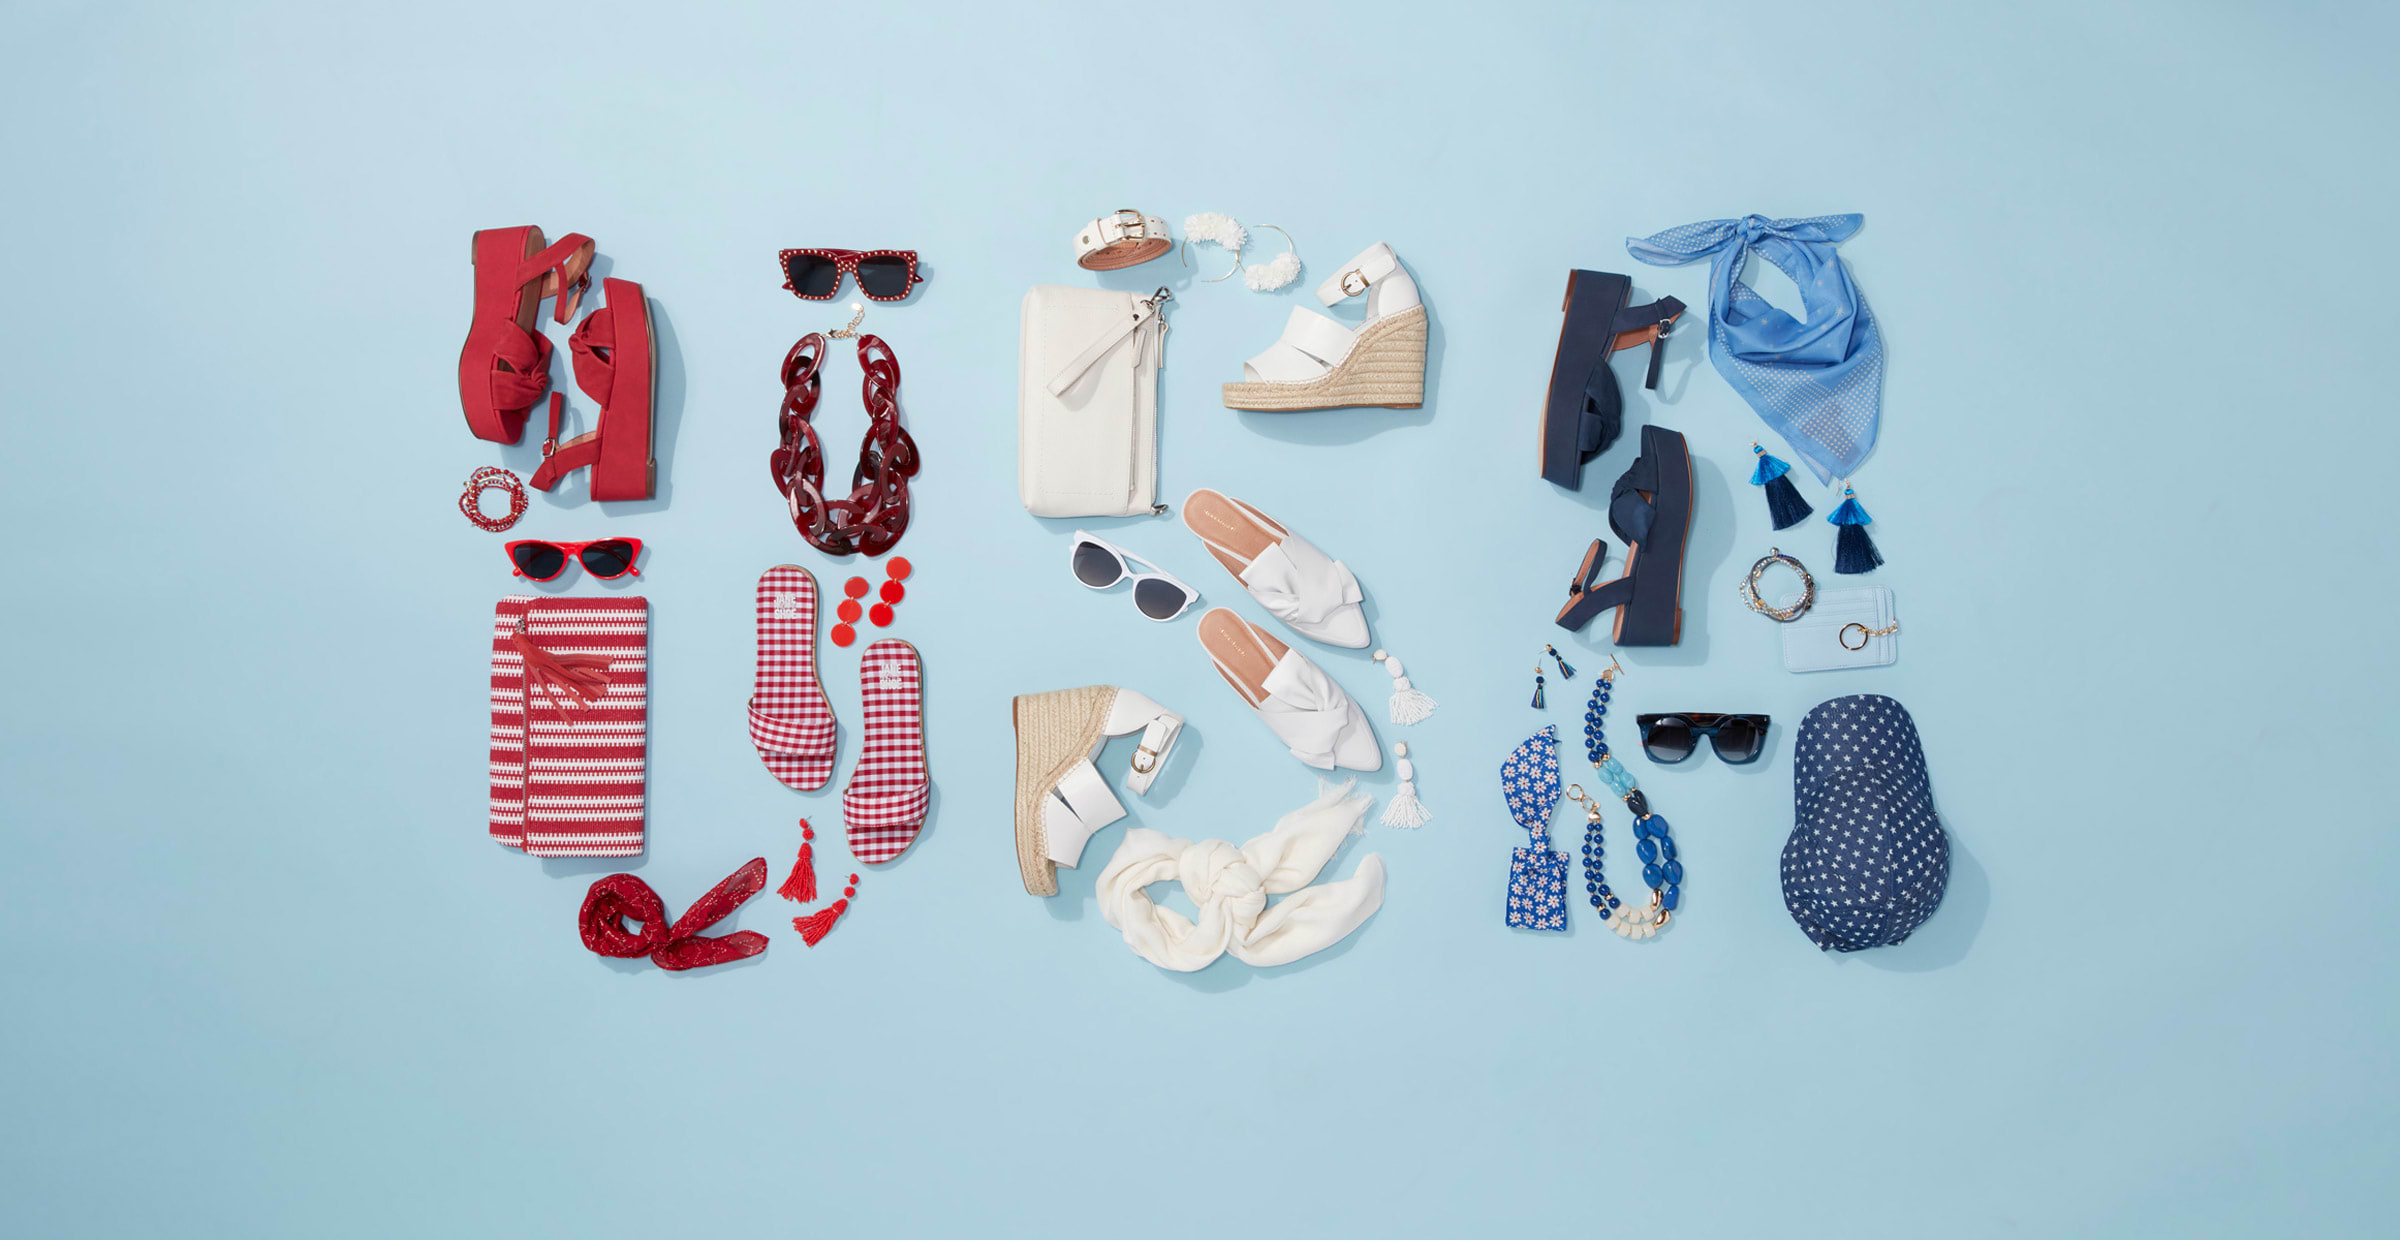 red, white and blue 4th of July outfits